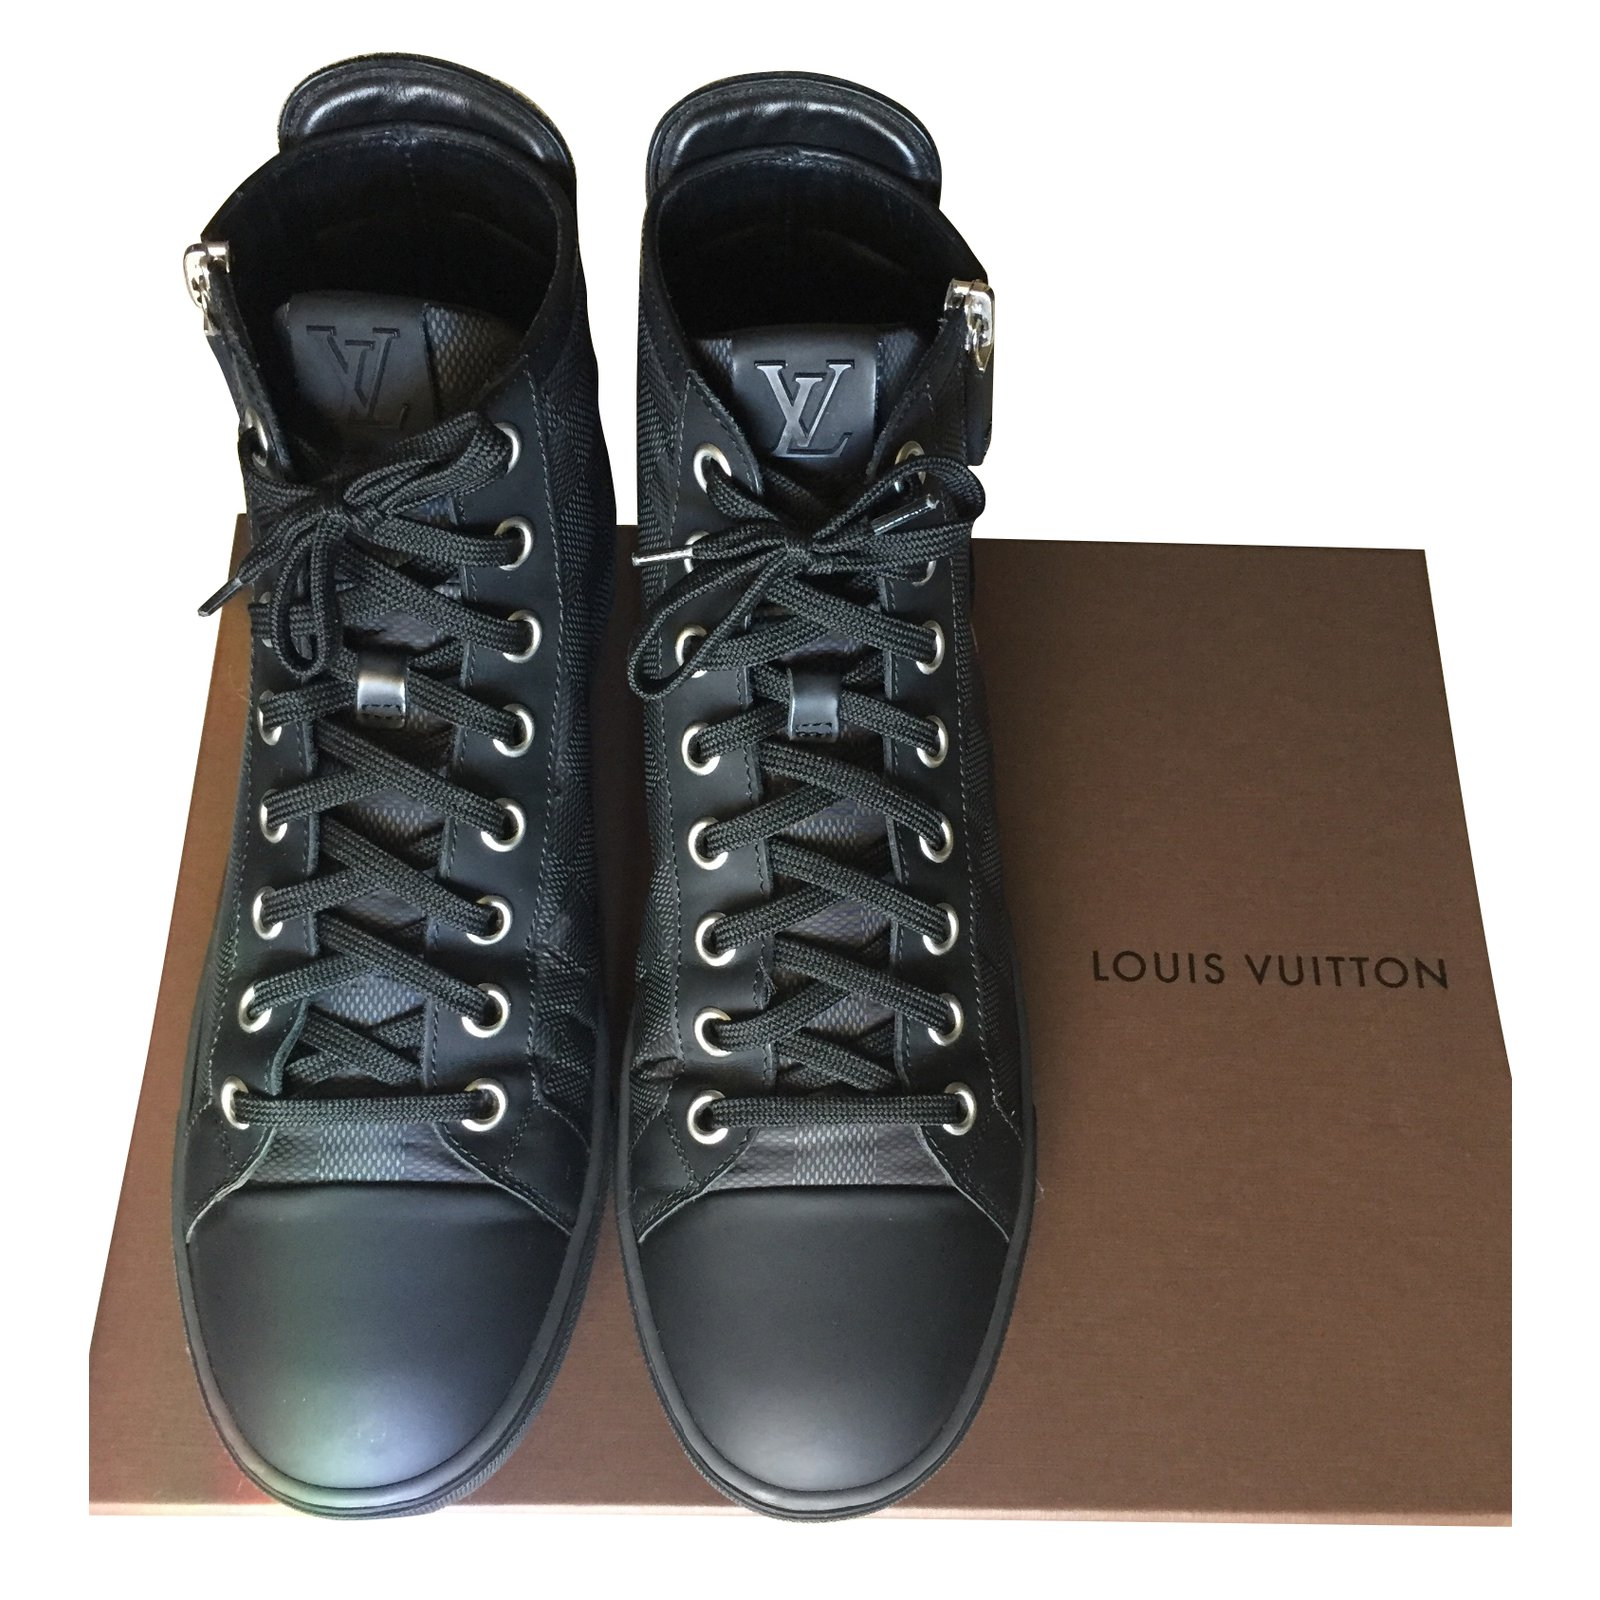 Louis Vuitton Sneakers Sneakers Leather Black ref.63142 - Joli Closet c66672da720